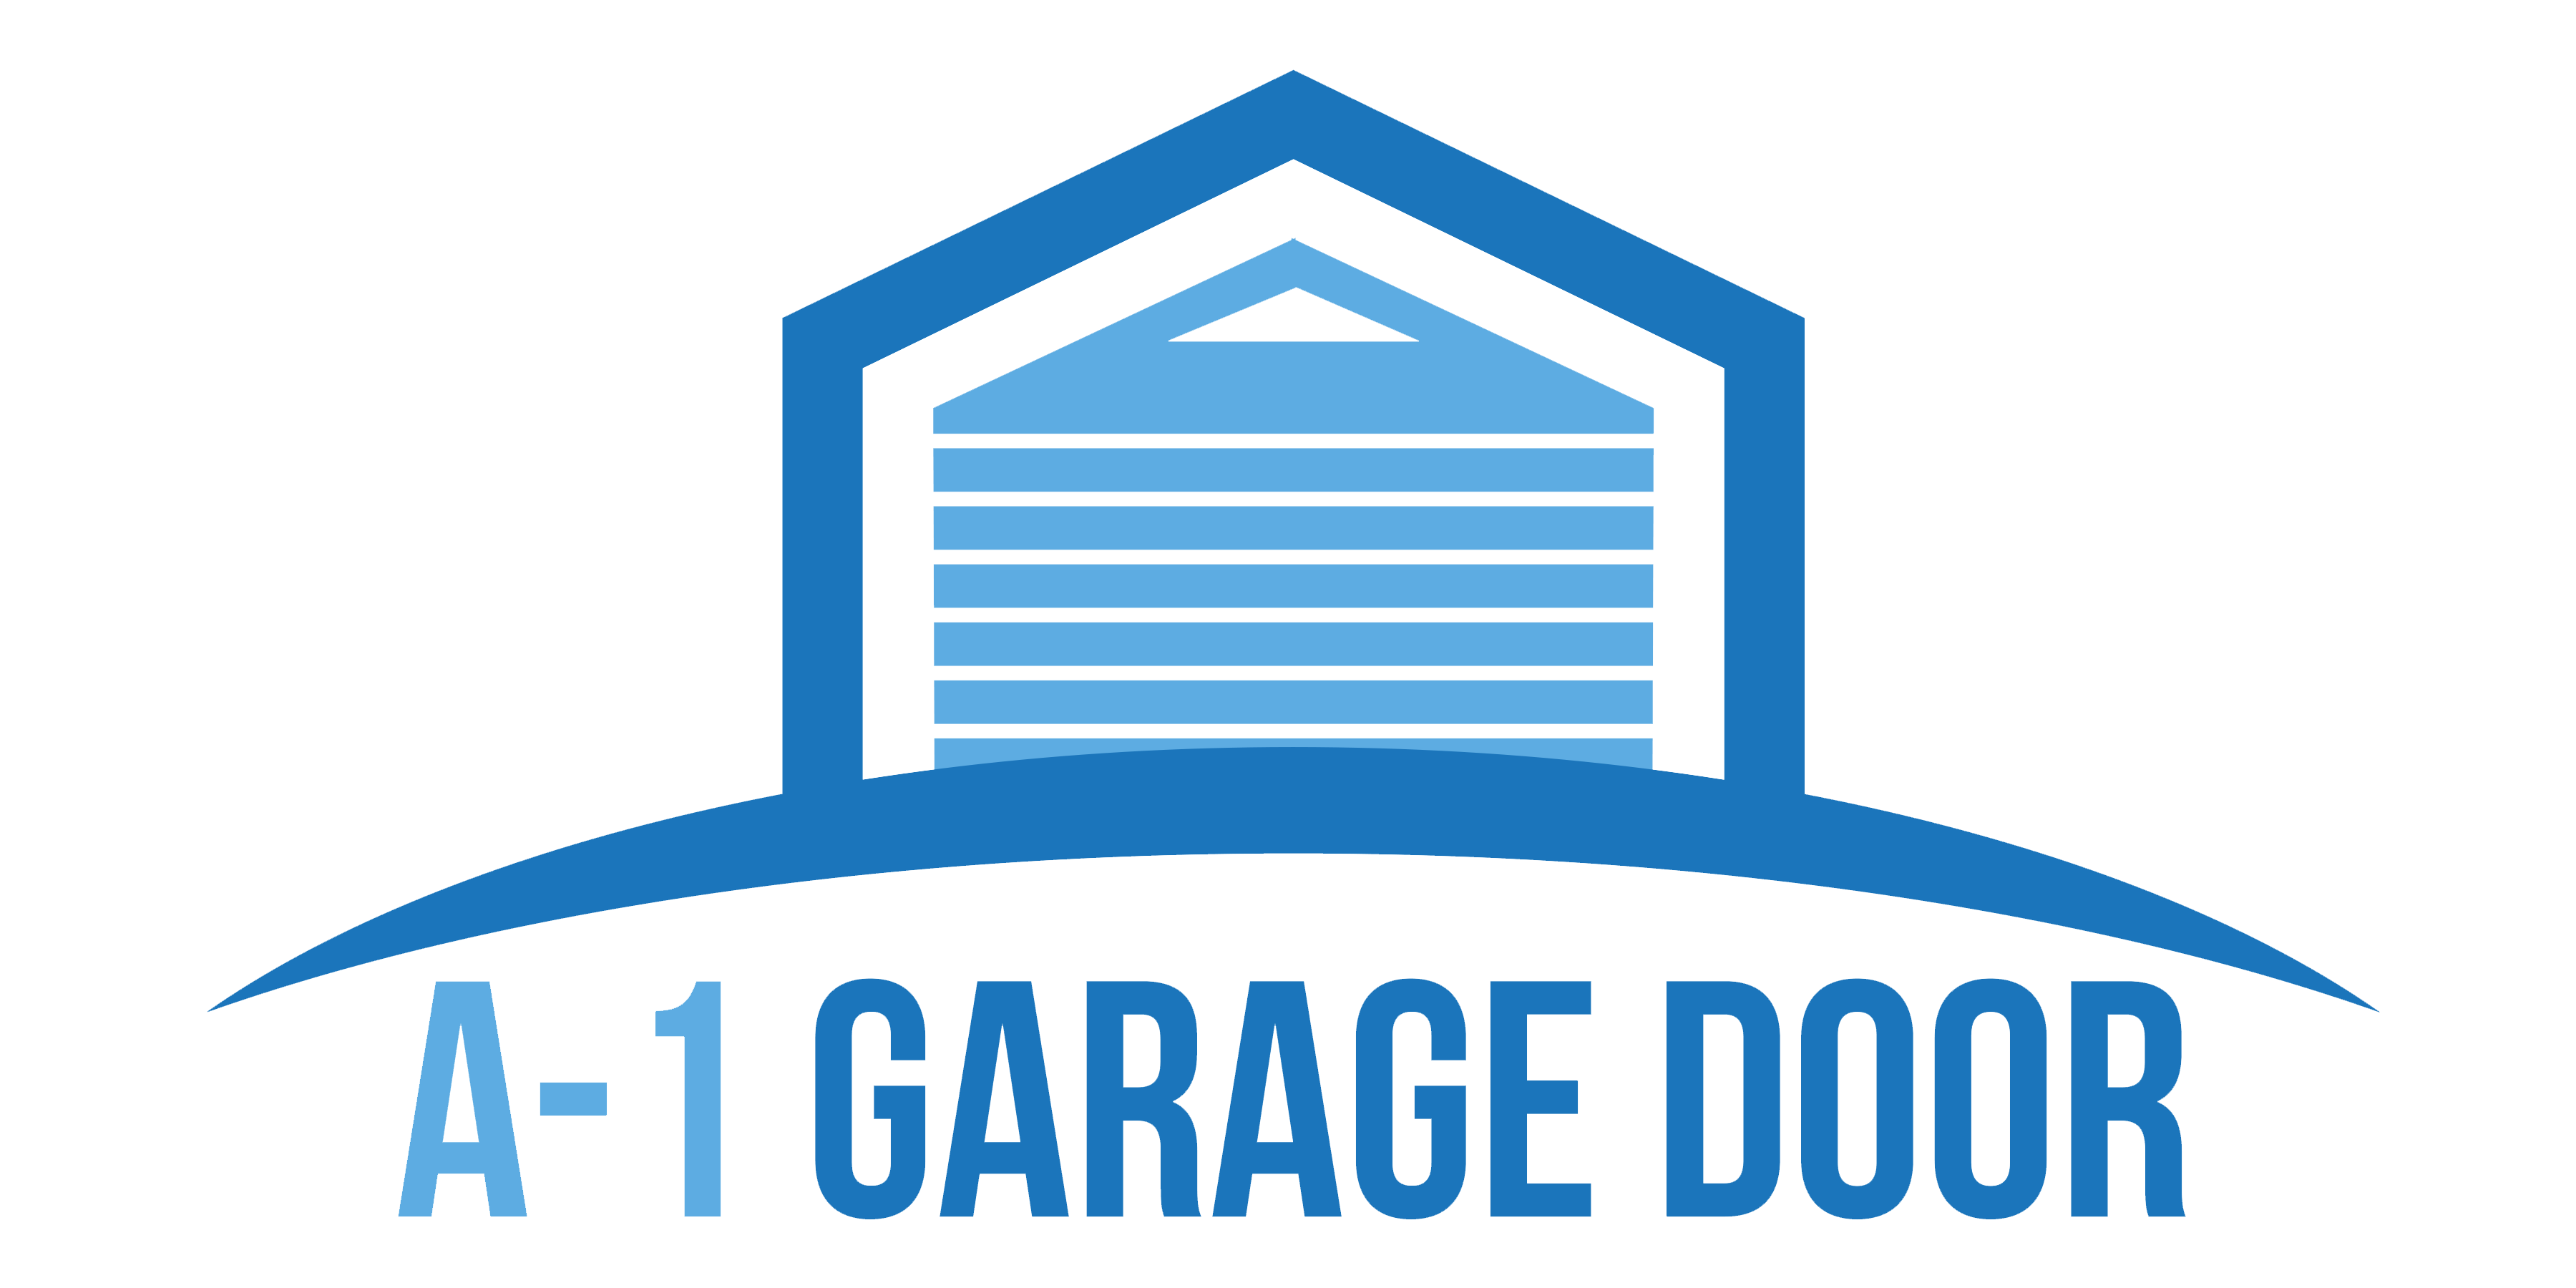 Beautiful A1 Garage Door Is A Full Line Garage Door Company Operated By Specially  Trained, Certified And Uniformed Technicians. We Specialize In Providing  Quality ...